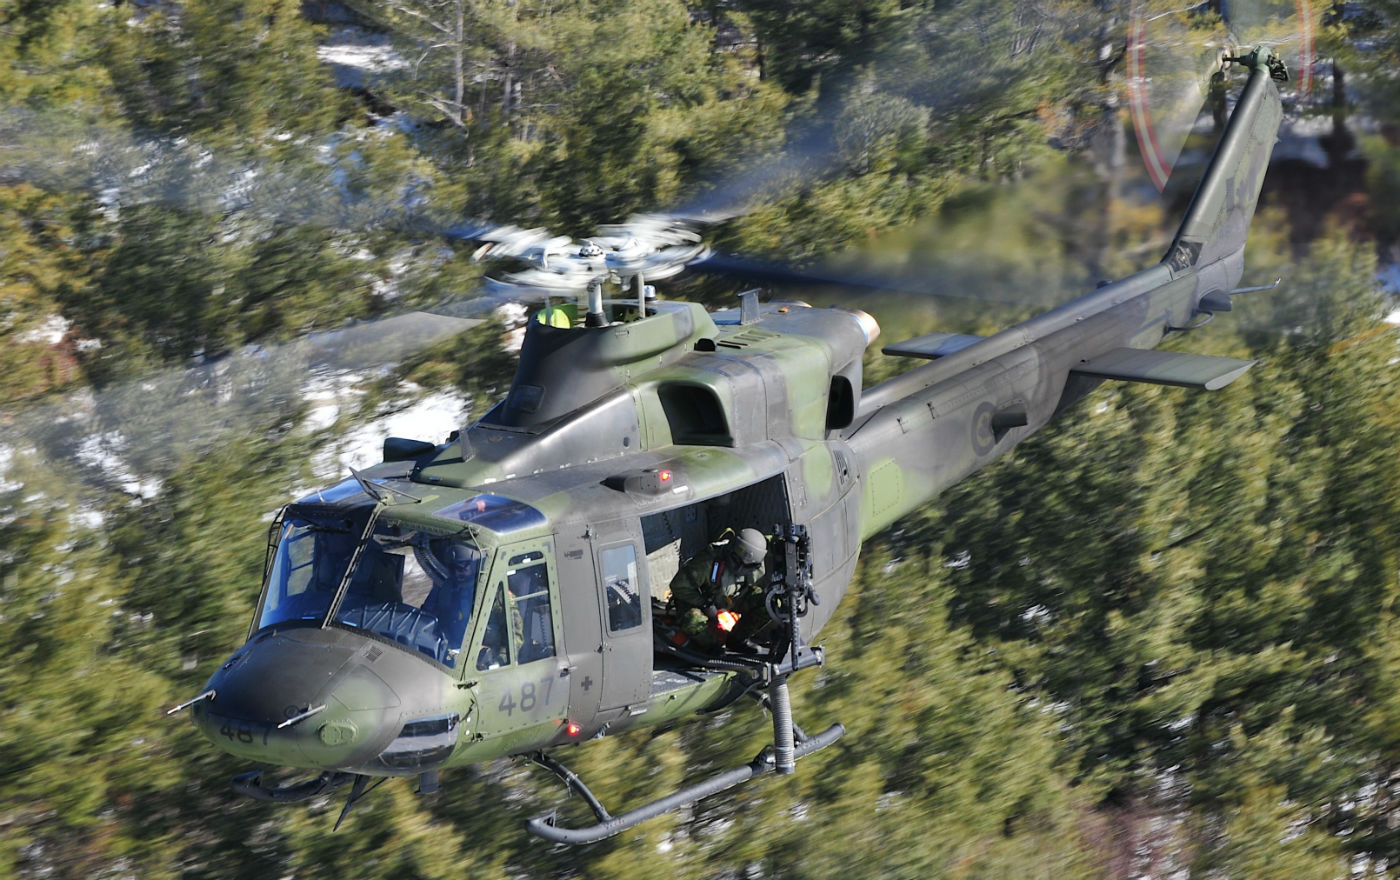 While the RCAF has outlined a limited life-extension project for the CH-146 that would upgrade avionics and some communications systems, it has also assessed whether it might be better to invest in a new platform, bringing the tactical aviation capability on par with the CH-147F Chinook. Mike Reyno Photo